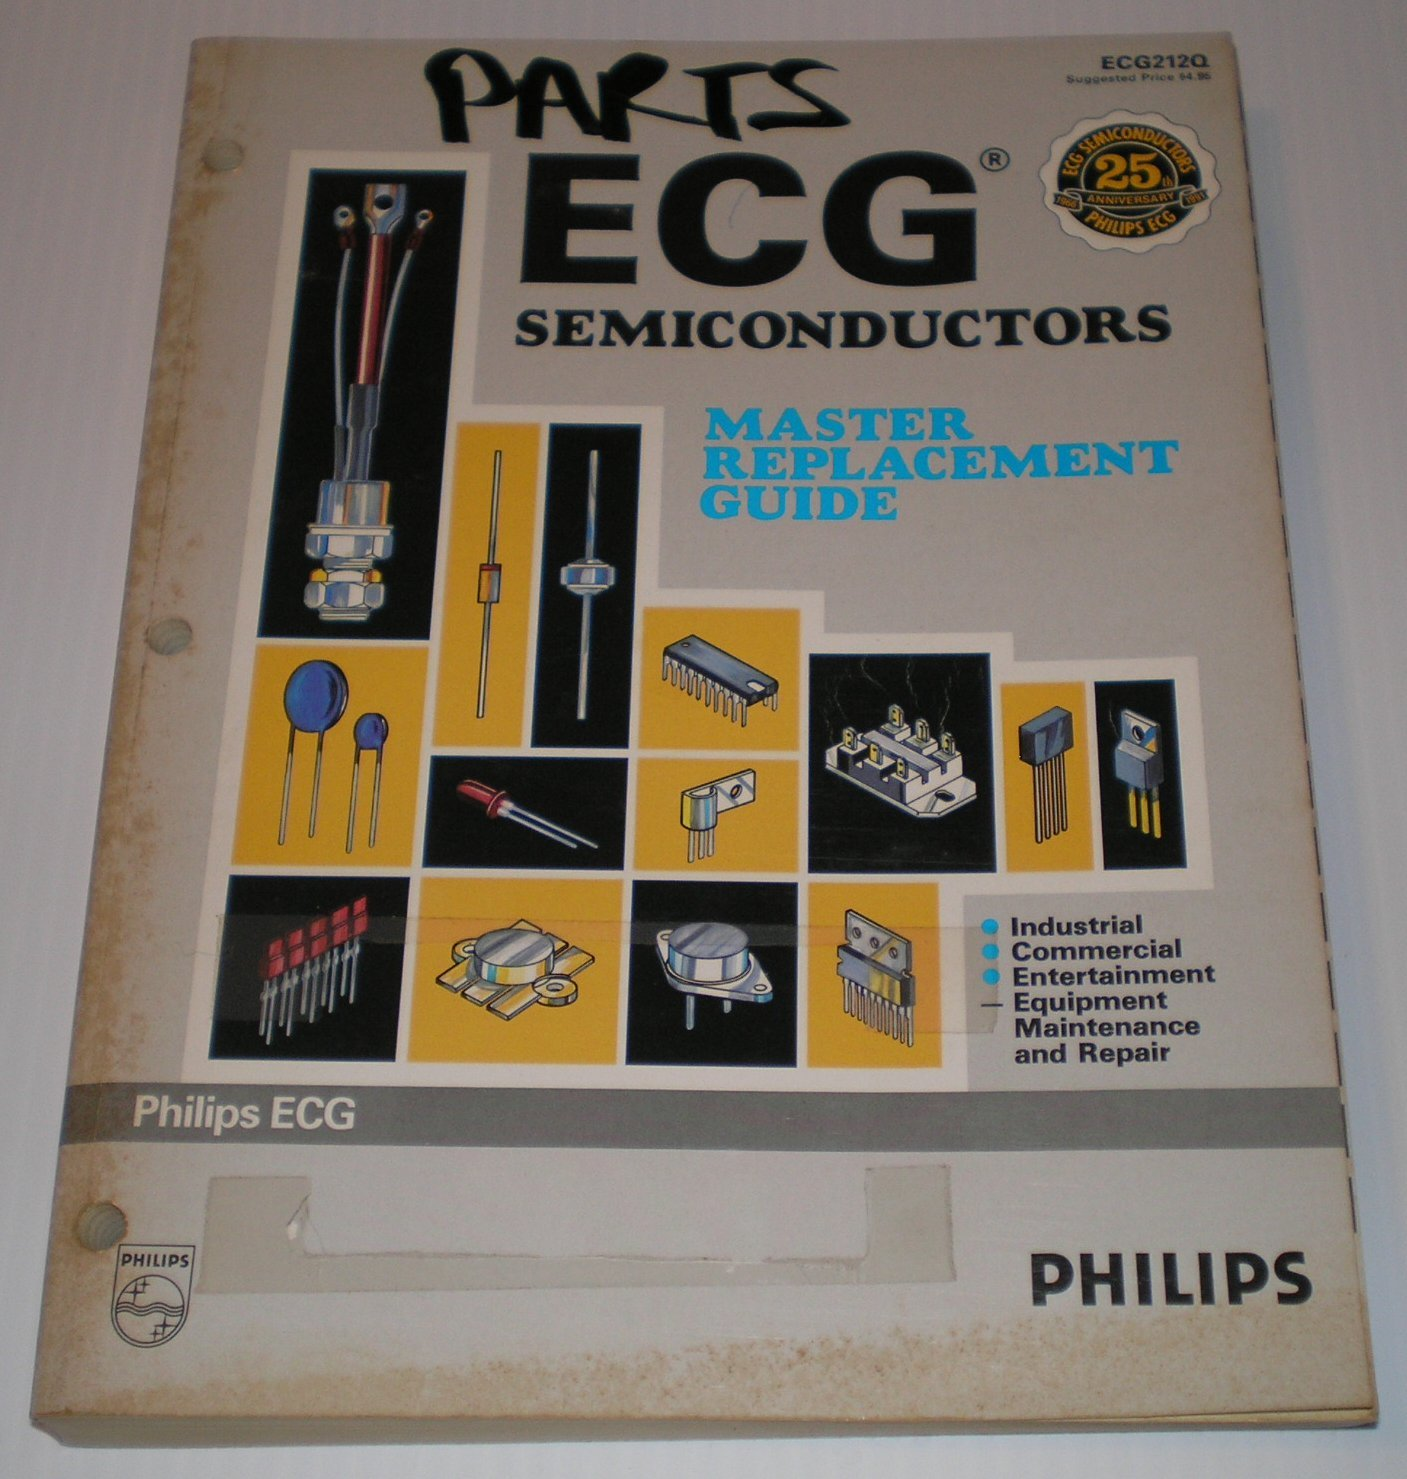 Nte manual de reemplazos semiconductores youtube. Annual report 2017. Ecg semiconductors  master replacement ...